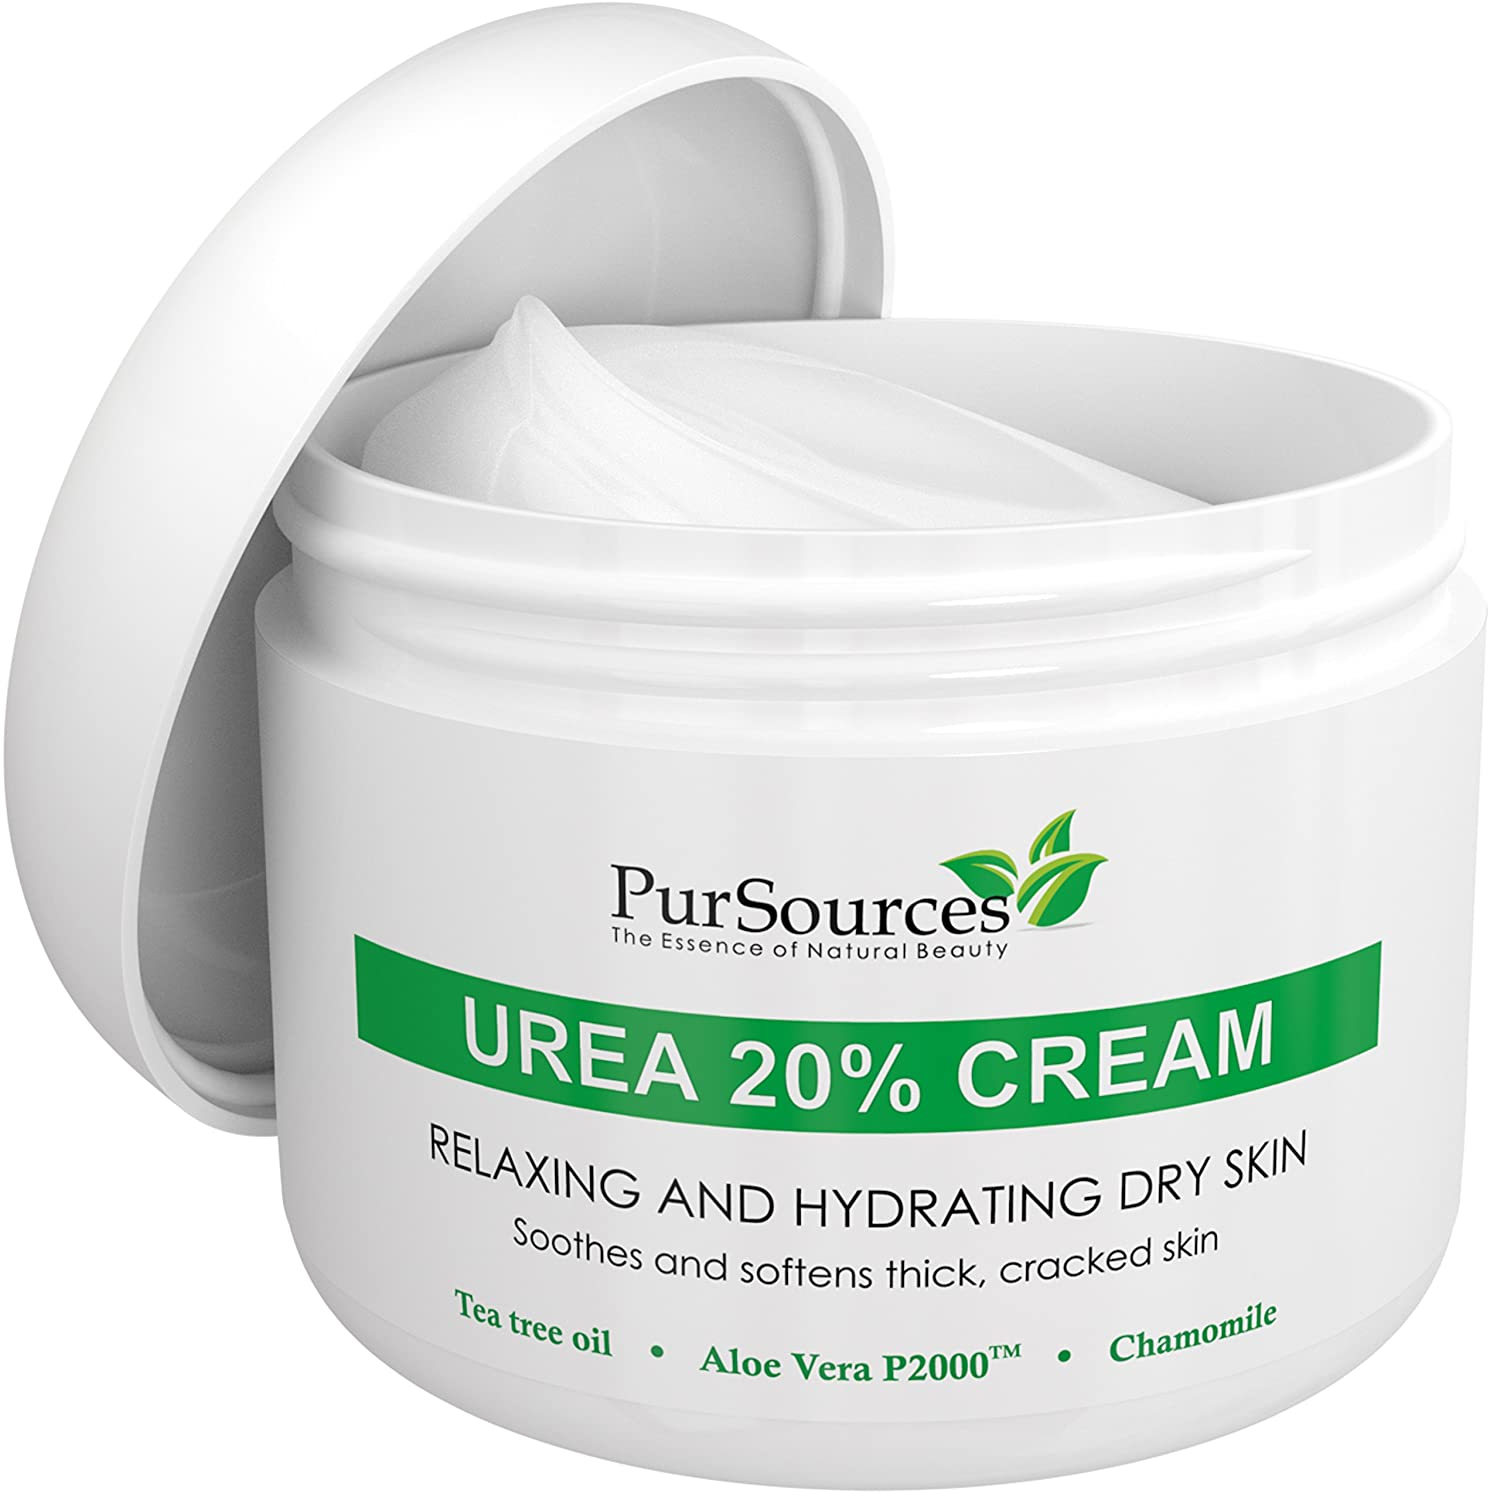 PurSources Urea 20% Healing Cream 4 oz - Best Callus Remover - Moisturizes and Rehydrates Hands, Feet and Knees to a Healthy Appearance - Soothes and Softens Thick, Cracked, Rough Dead and Dry Skin